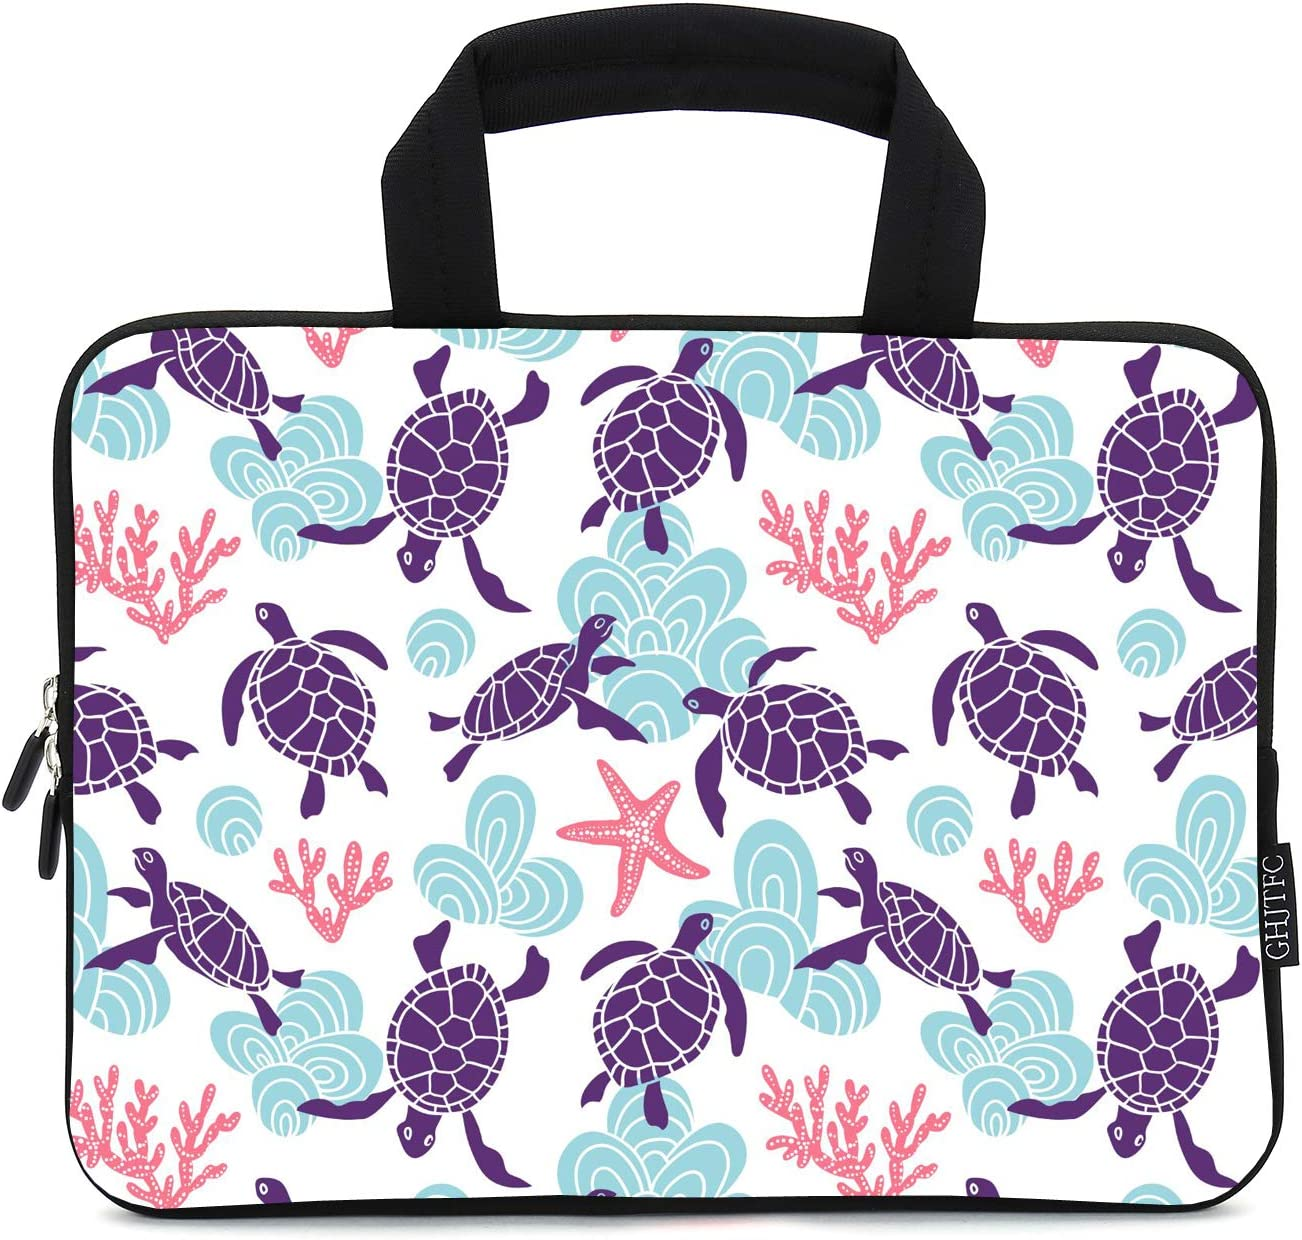 12 Inch Laptop Sleeve Carrying Bag Protective Case Neoprene Sleeve Tote Tablet Cover Notebook Briefcase Bag with Handle for Women Men(Turtle,12